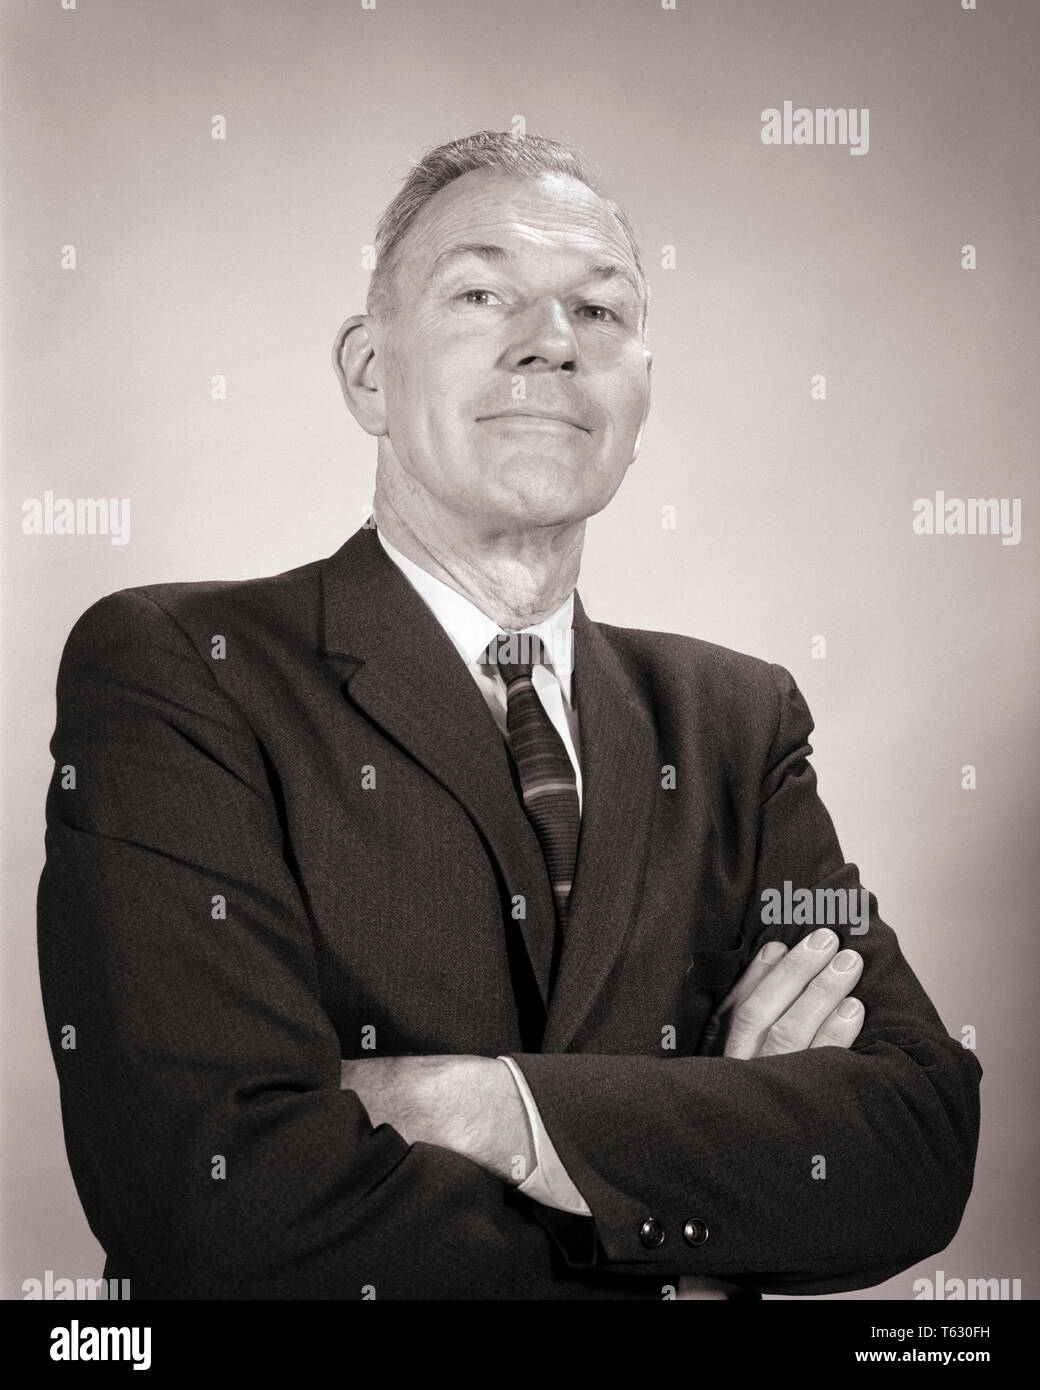 1960s MATURE MAN ARMS CROSSED FOLDED WITH SELF-SATISFIED SMUG SUPERIOR FACIAL EXPRESSION LOOKING AT CAMERA - s14663 HAR001 HARS POLITICIAN PRIDE SUPERIOR POLITICS SALESMEN BLACK AND WHITE CAUCASIAN ETHNICITY HAR001 OLD FASHIONED SELF-SATISFIED - Stock Image